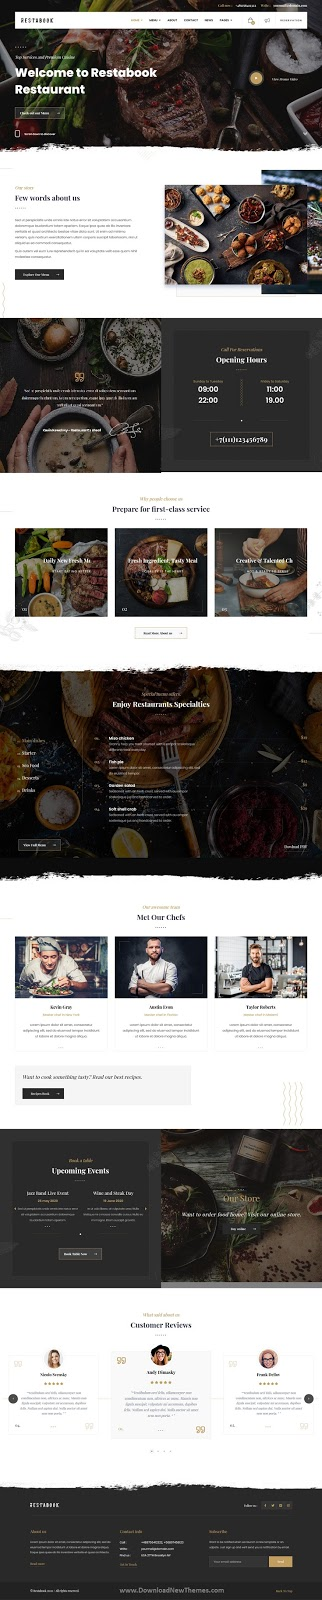 Best Restaurant / Cafe / Pub WordPress Theme